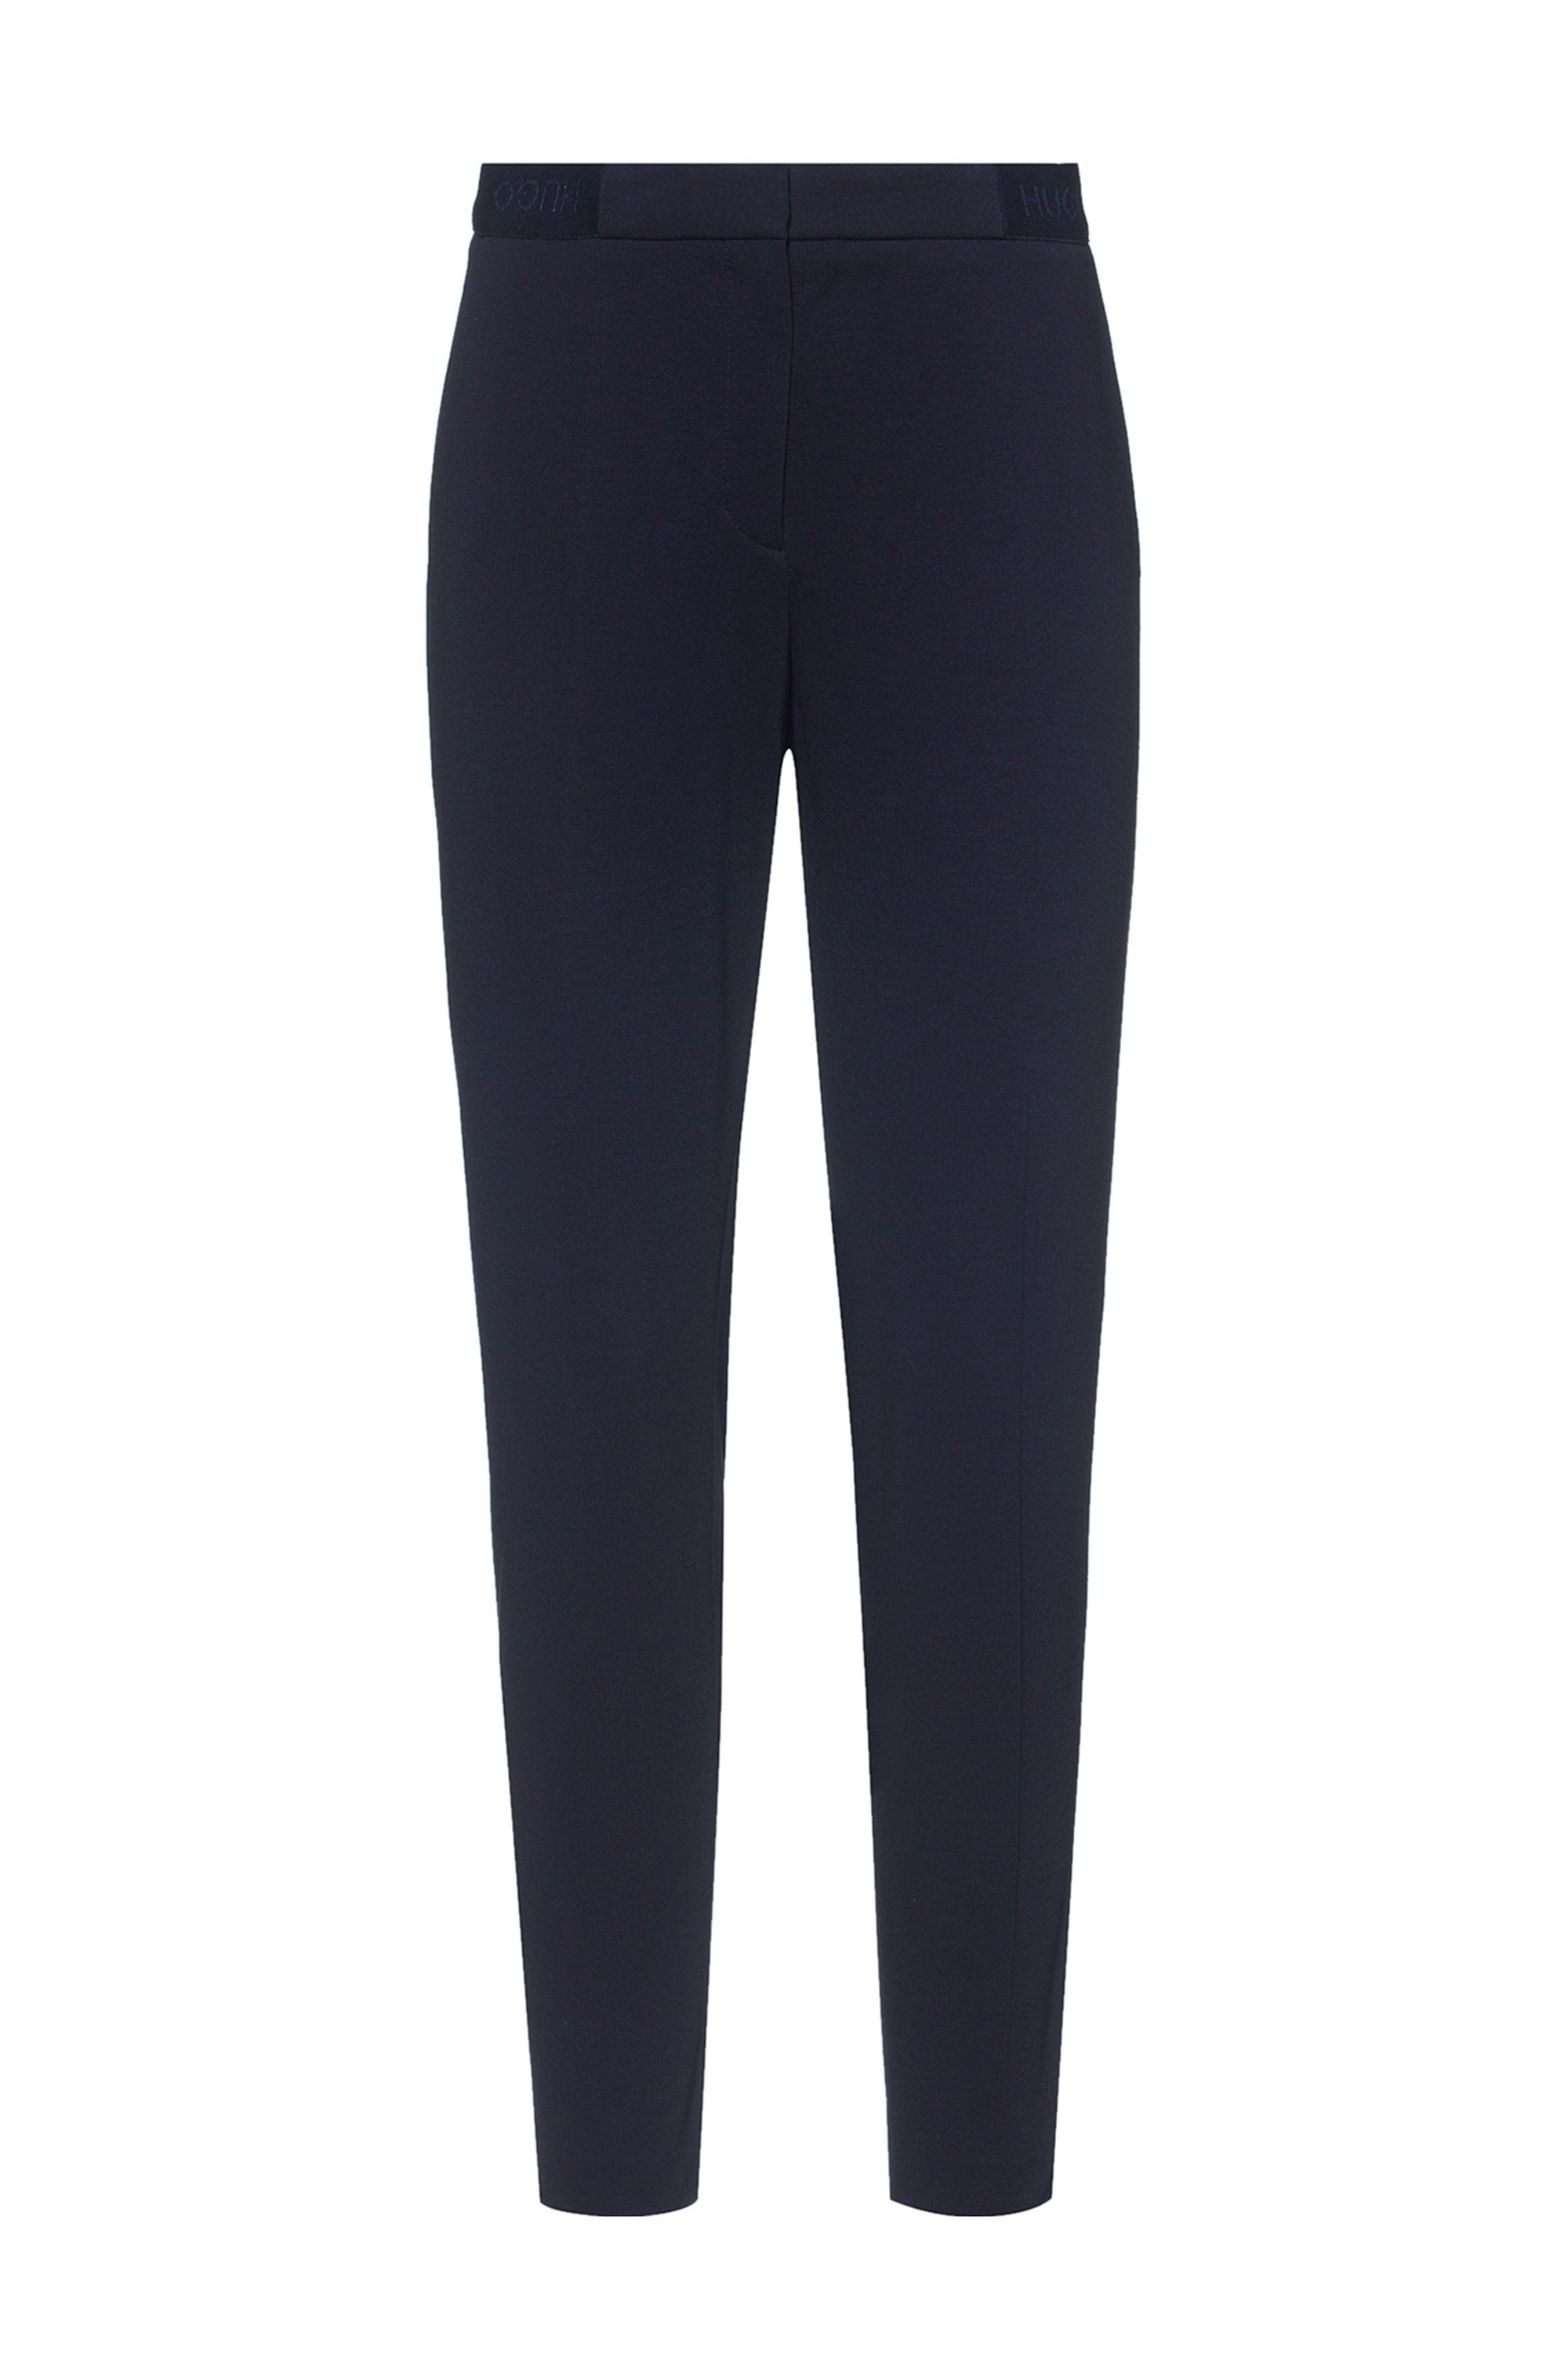 Slim-fit trousers in stretch jersey with logo waistband, Black